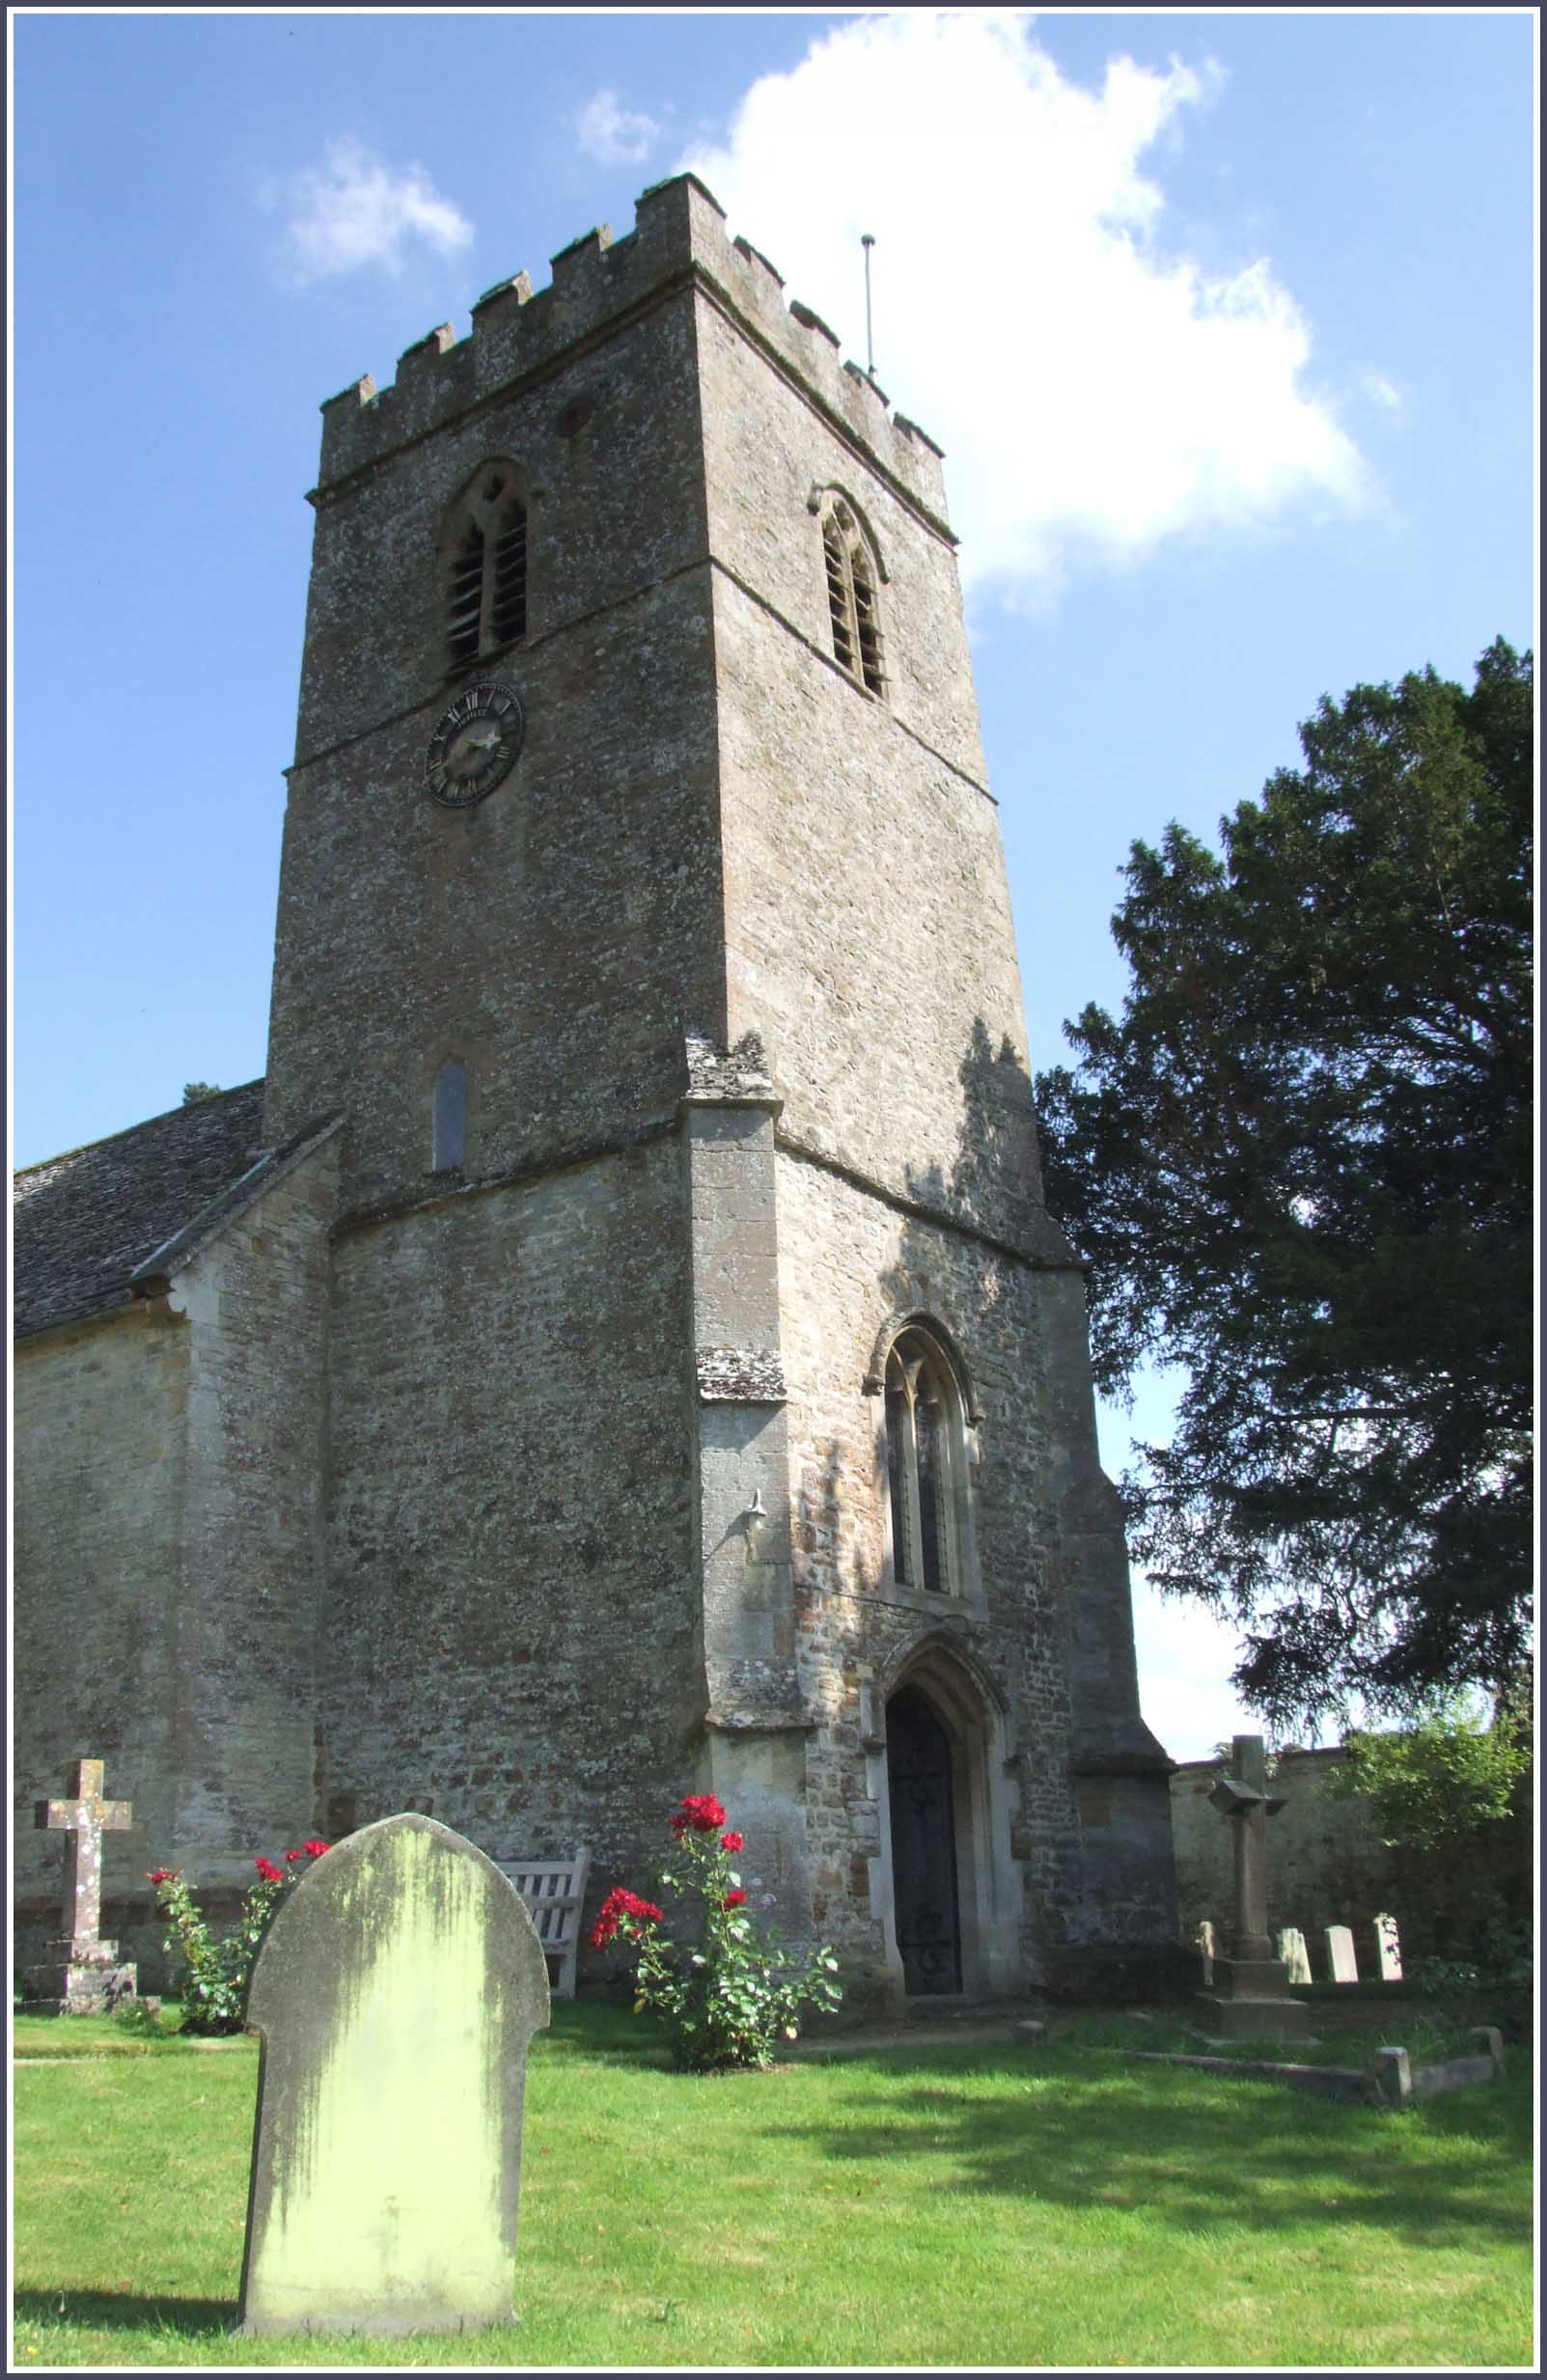 Stone church with square tower